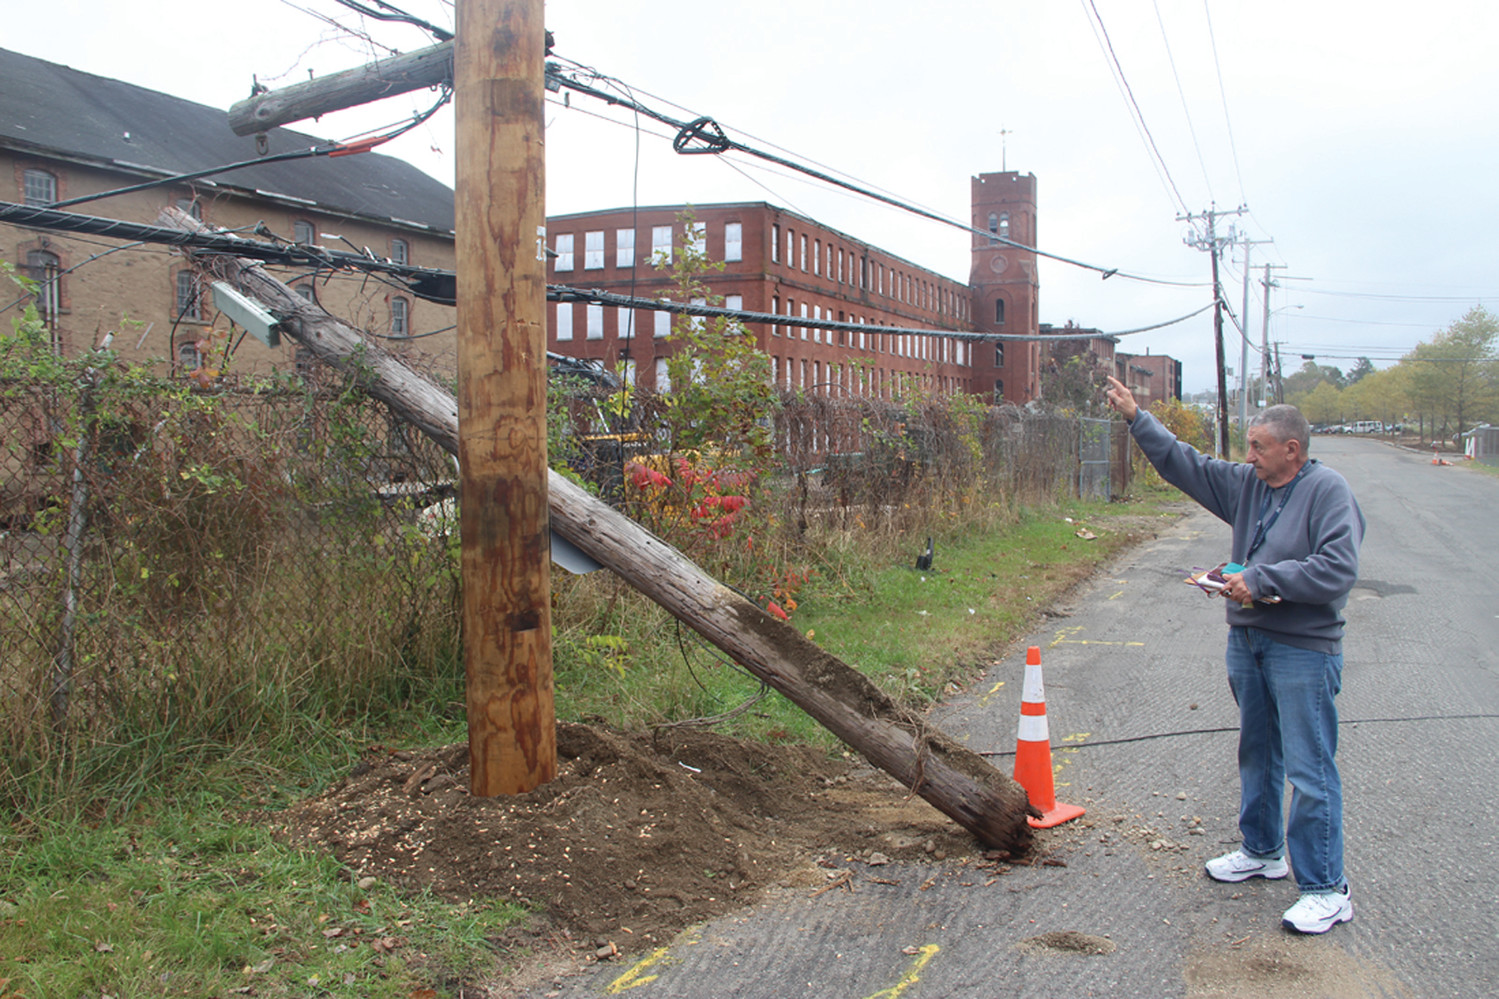 SCENE OF INCIDENT: Joseph DeFranco points to the utility pole on Knight Street that he says was split when a vehicle working on the former Pontiac Mills property snagged a wire.